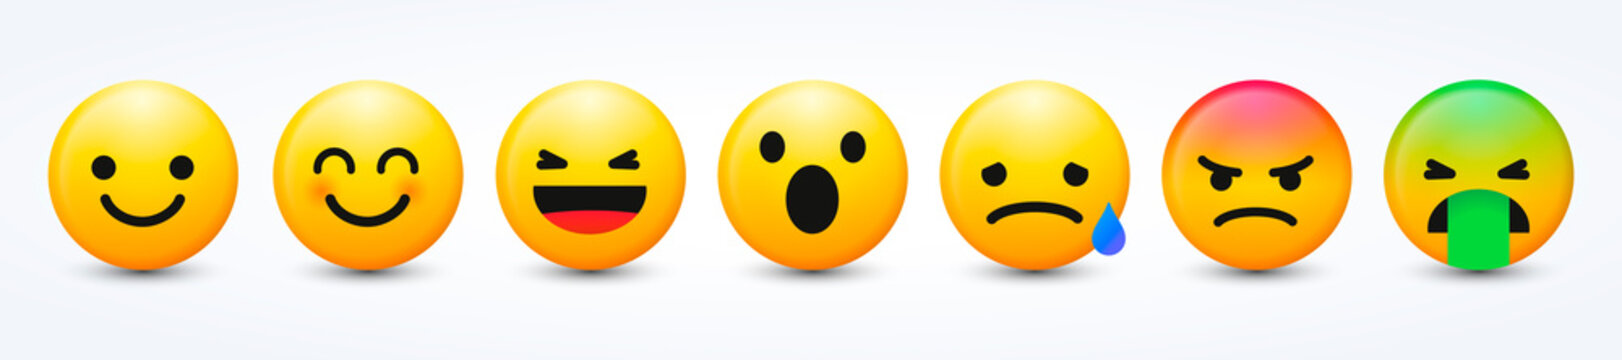 3D Design Vector New Modern Emoticons Set with Different Reactions for Social Network